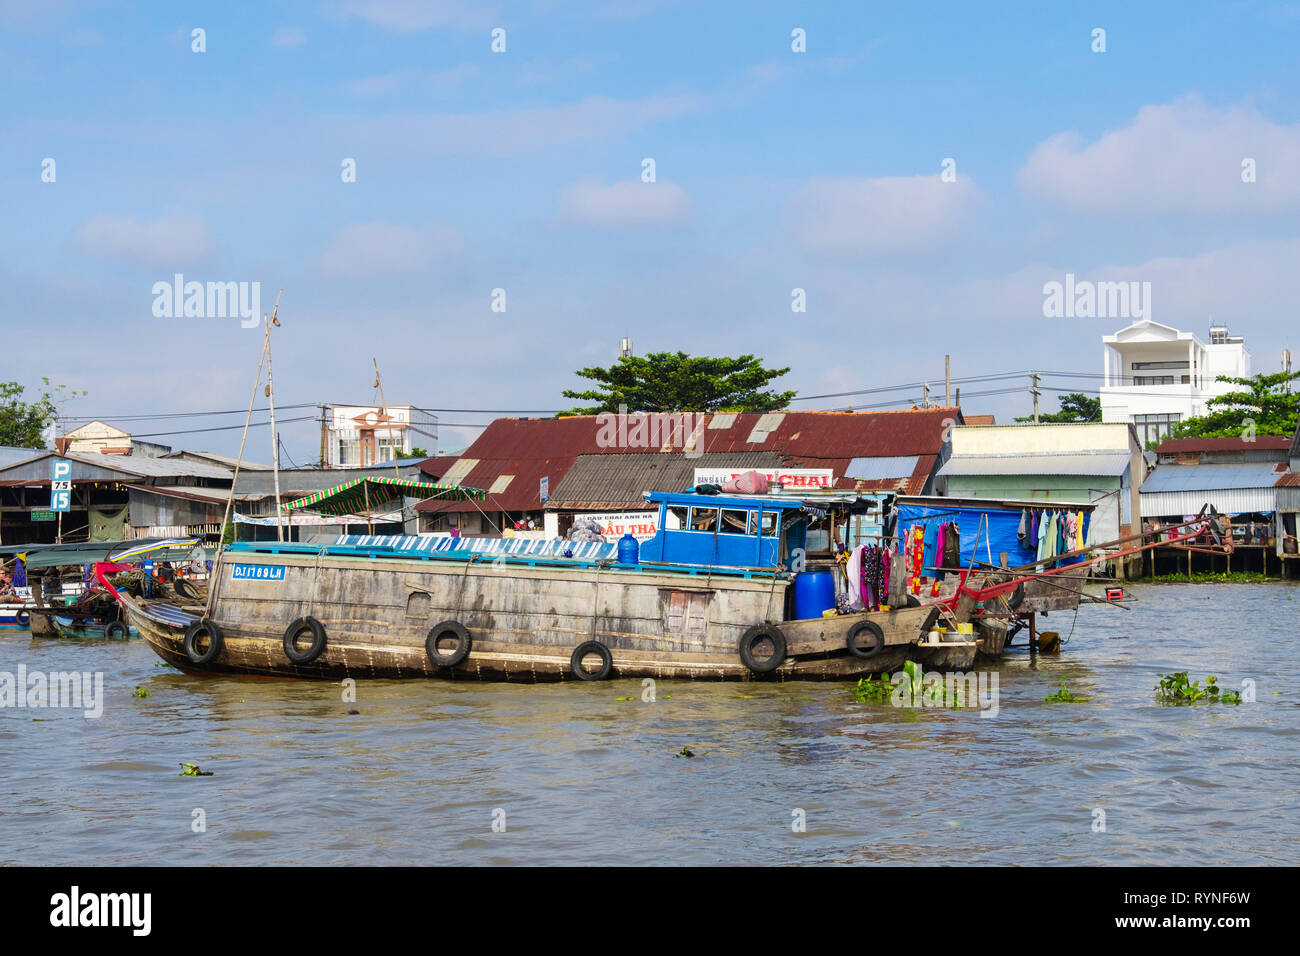 Traditional house boat in the floating market on Hau River. Can Tho, Mekong Delta, Vietnam, Asia Stock Photo